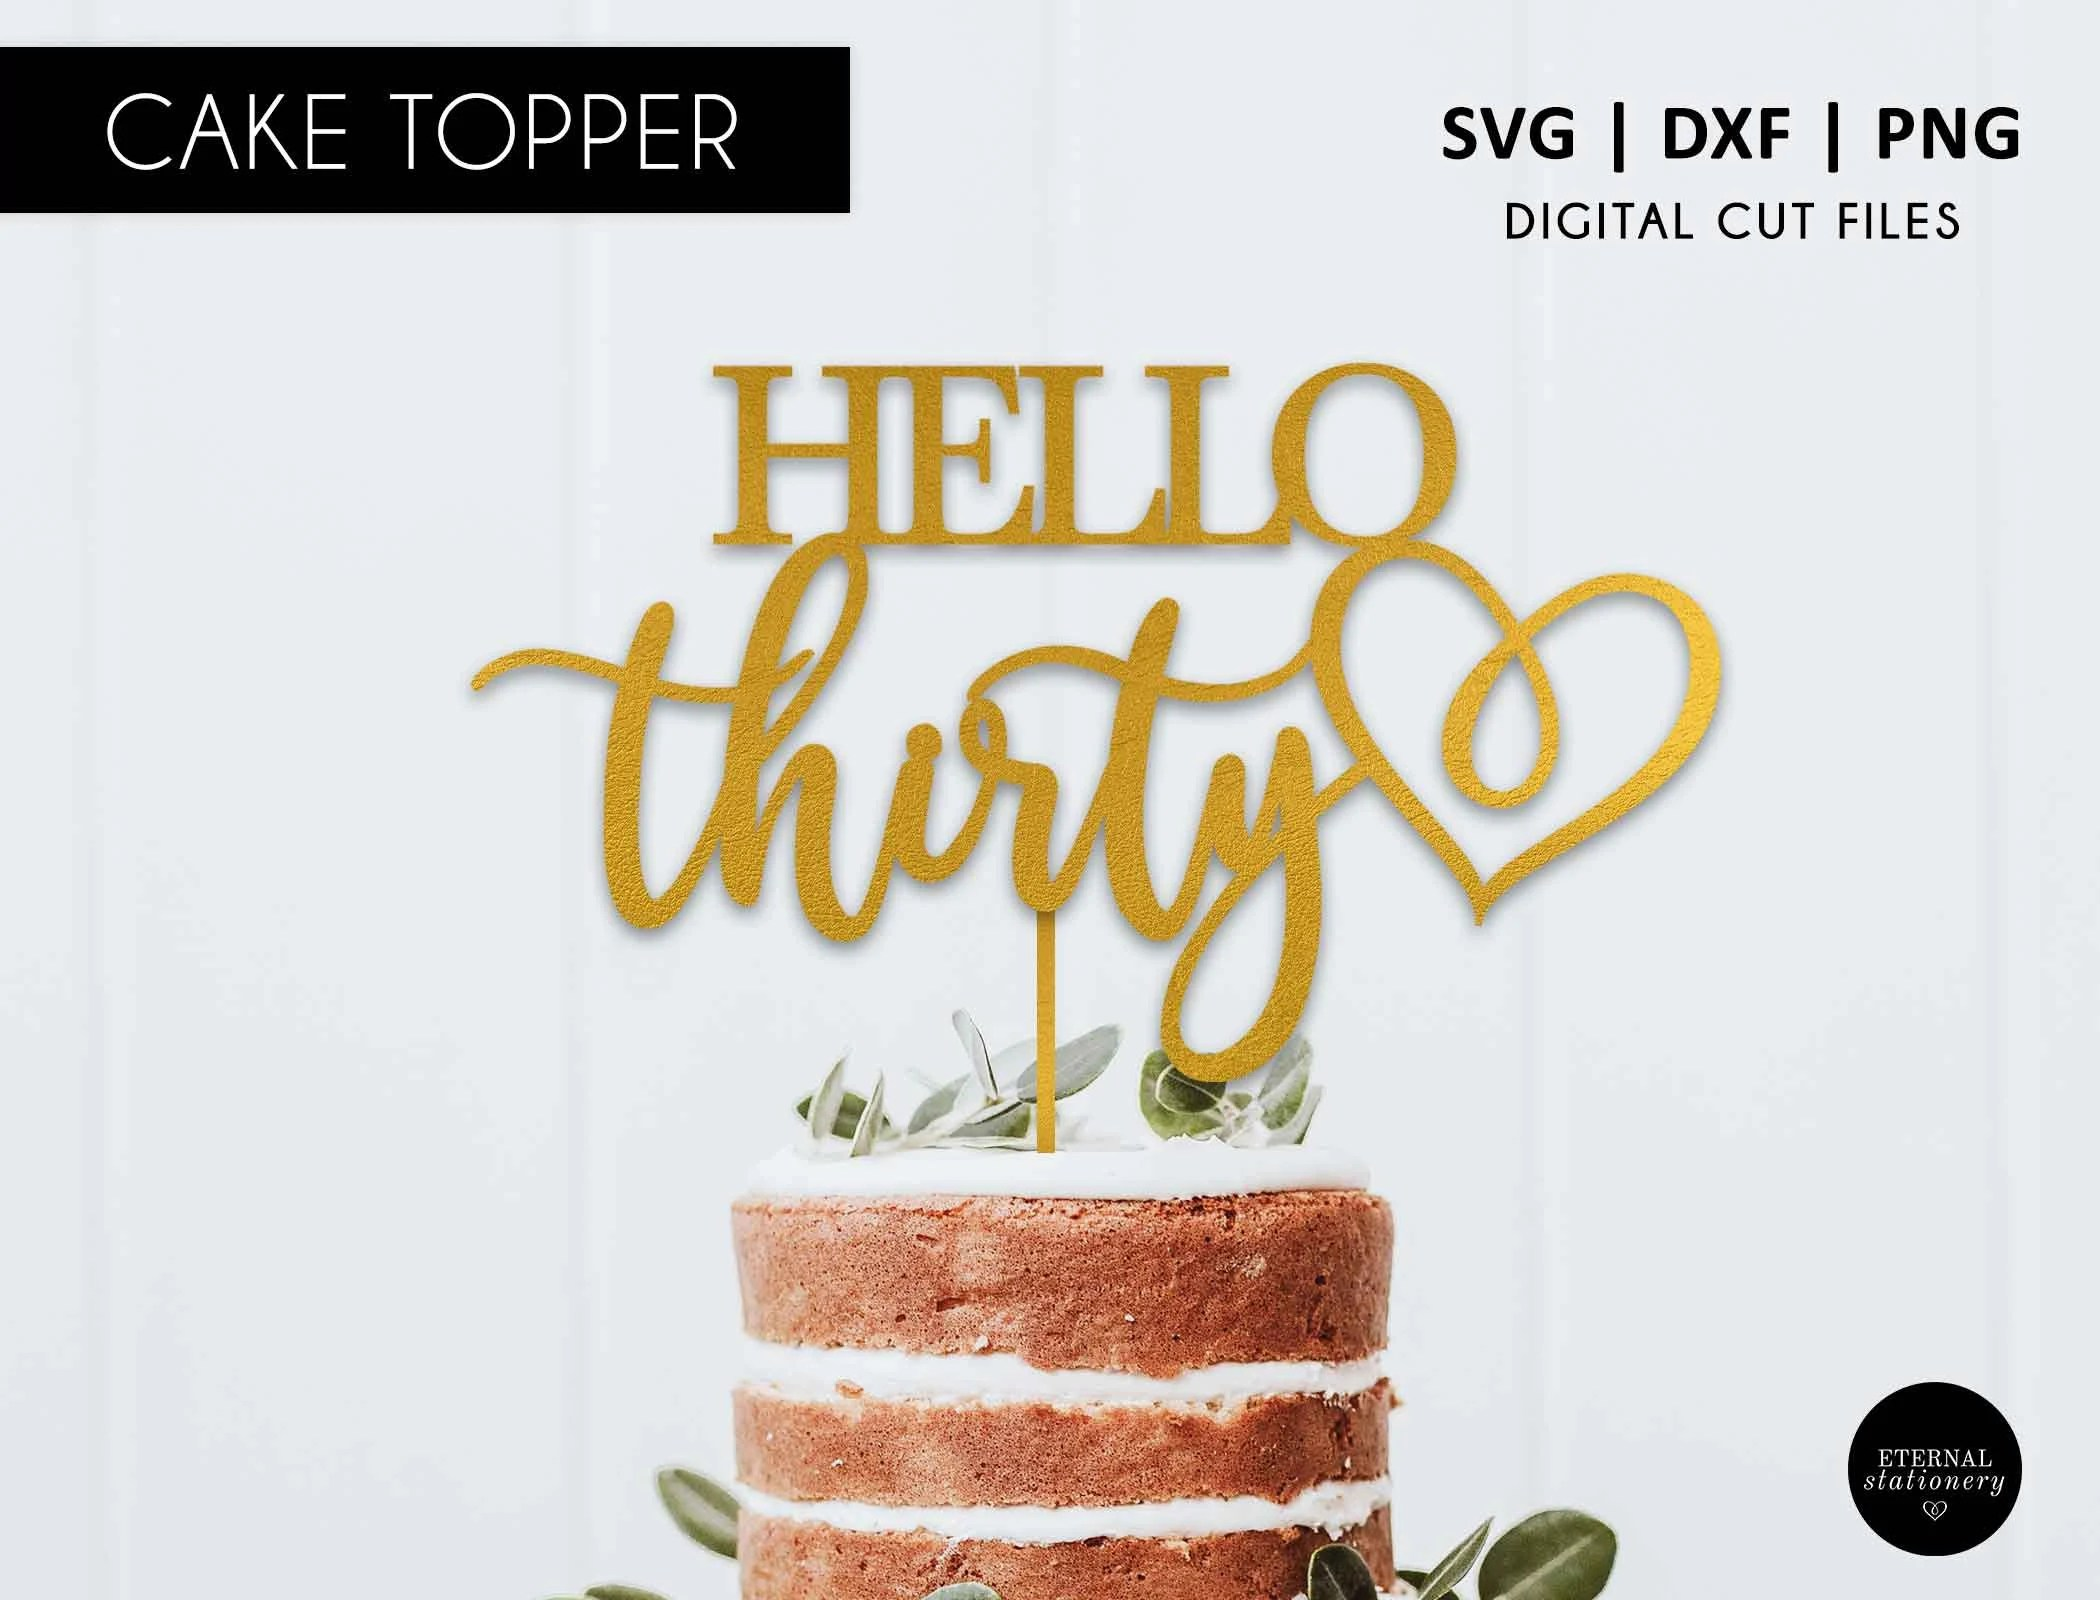 30th Birthday Cake Topper Svg Dxf Png Svg Cutting File Etsy